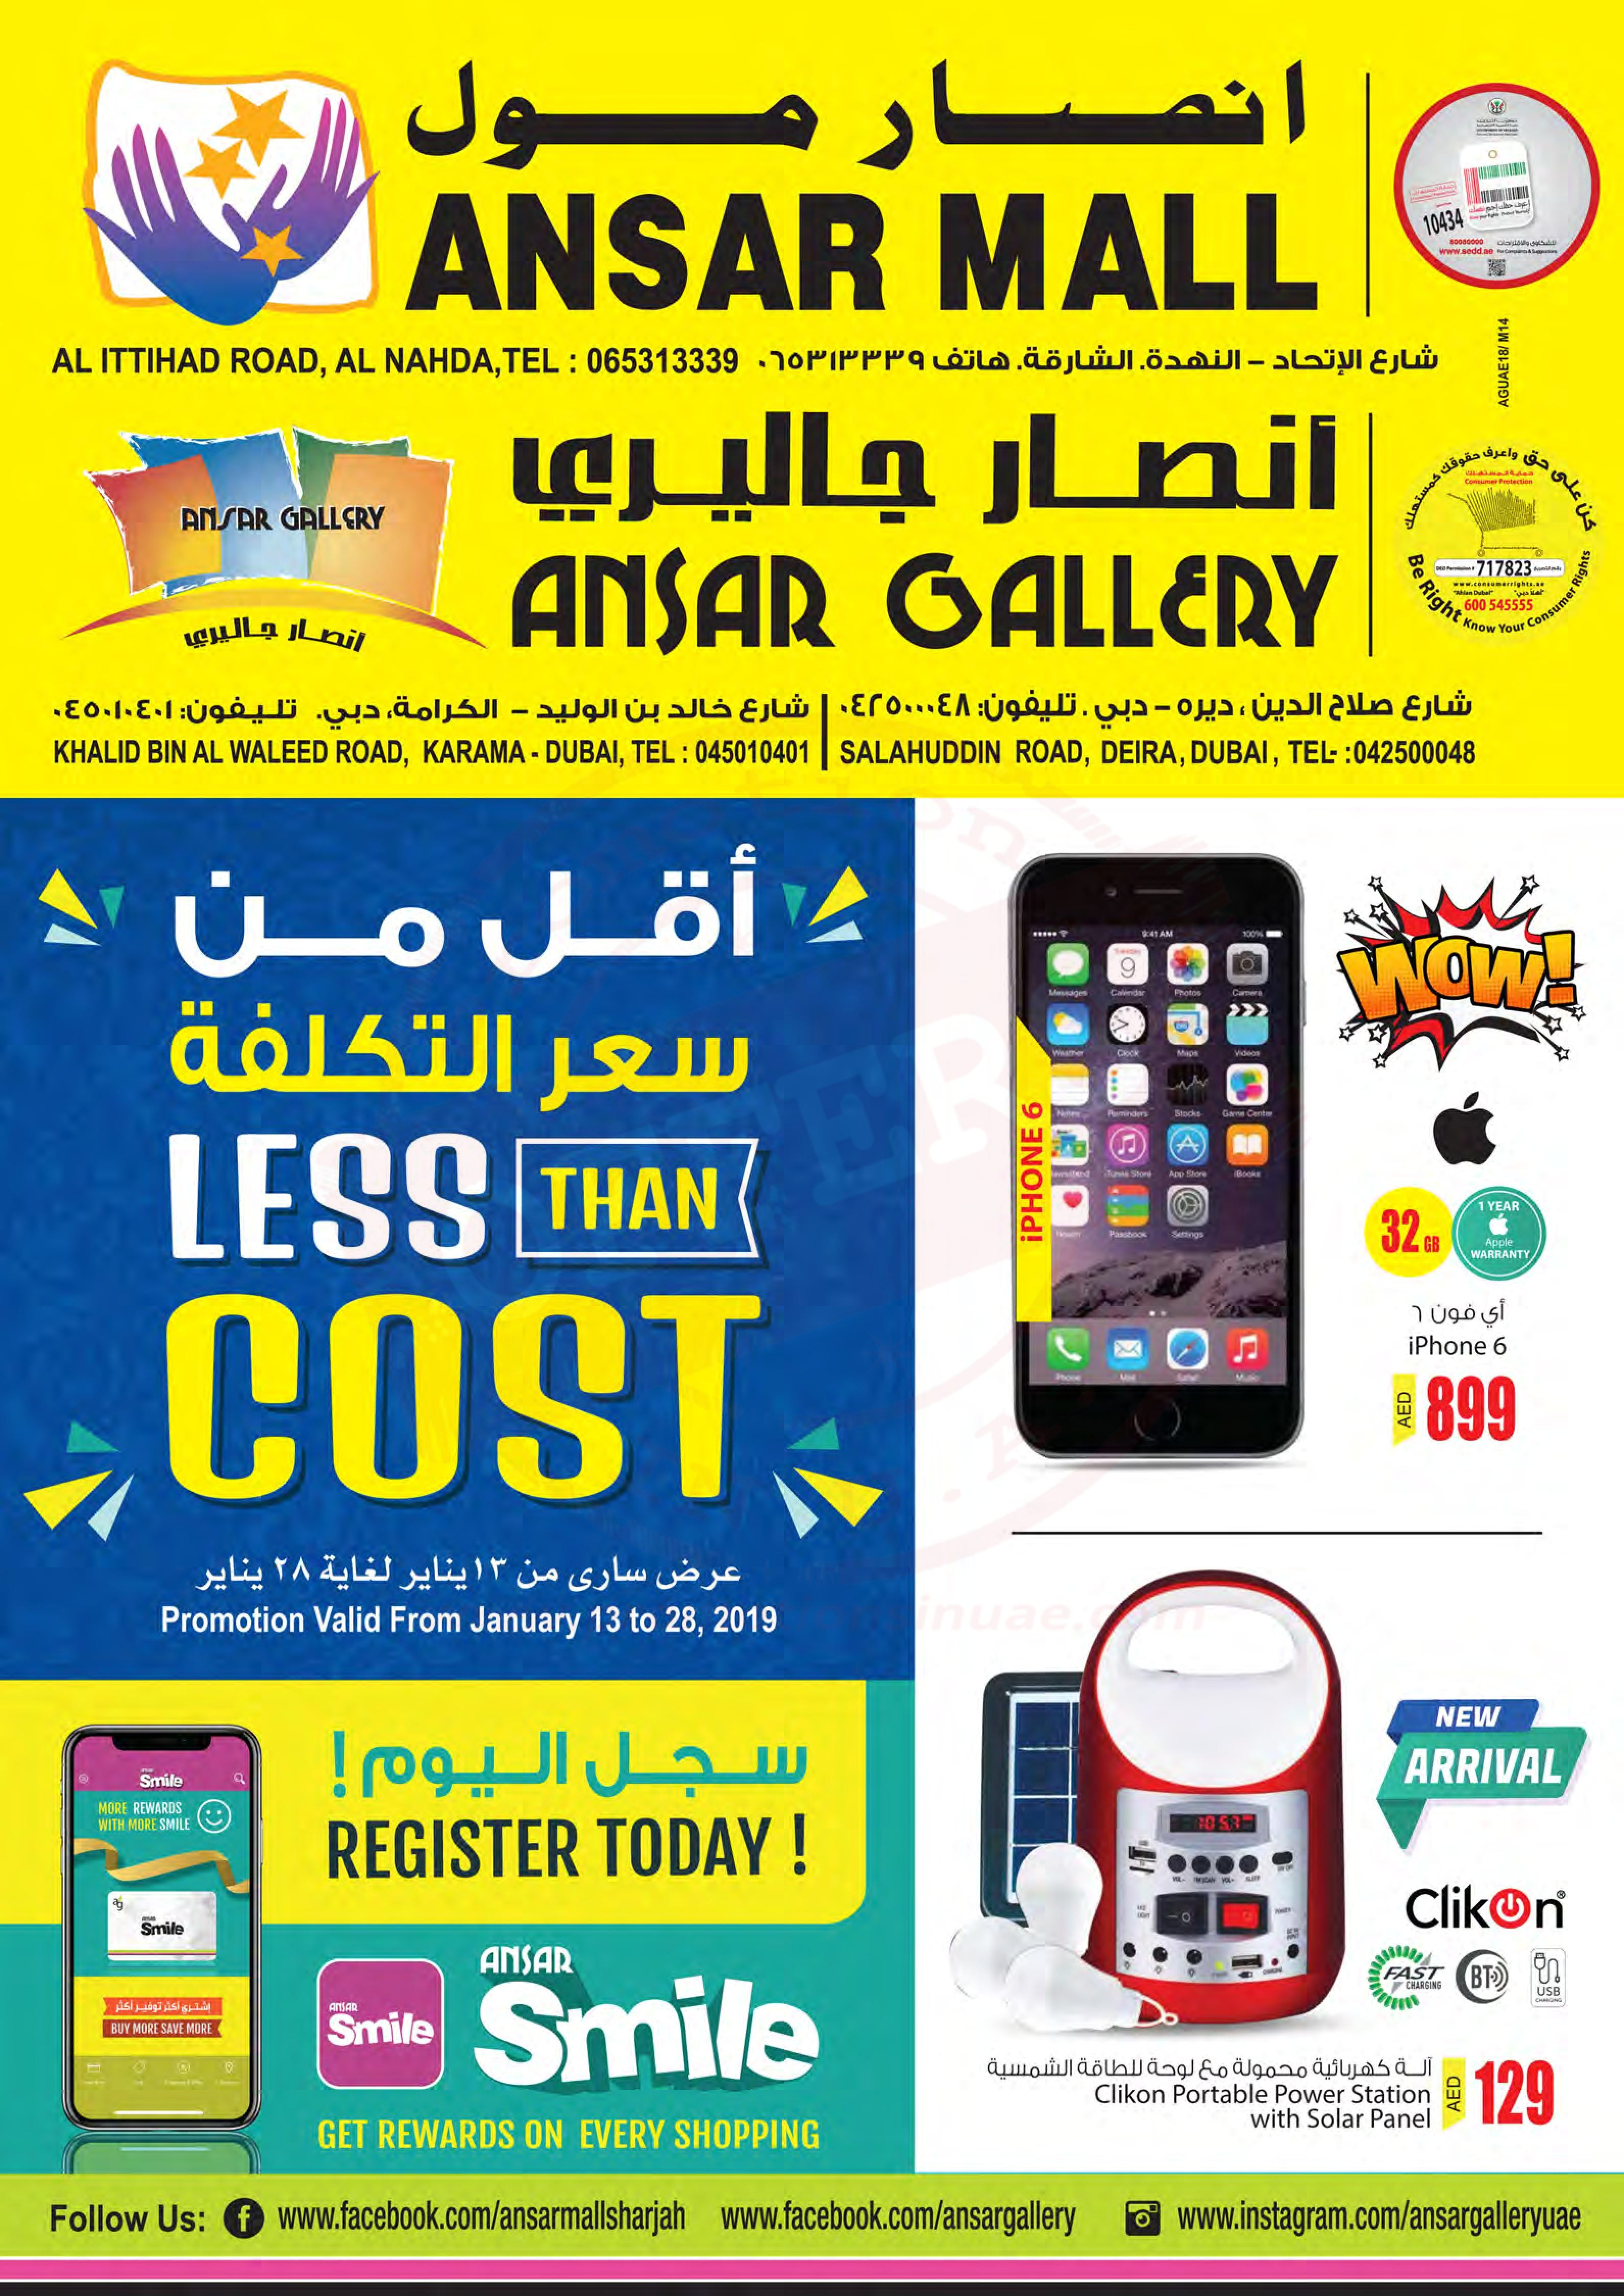 Ansar Mall Less Than Cost Offer - Promotionsinuae